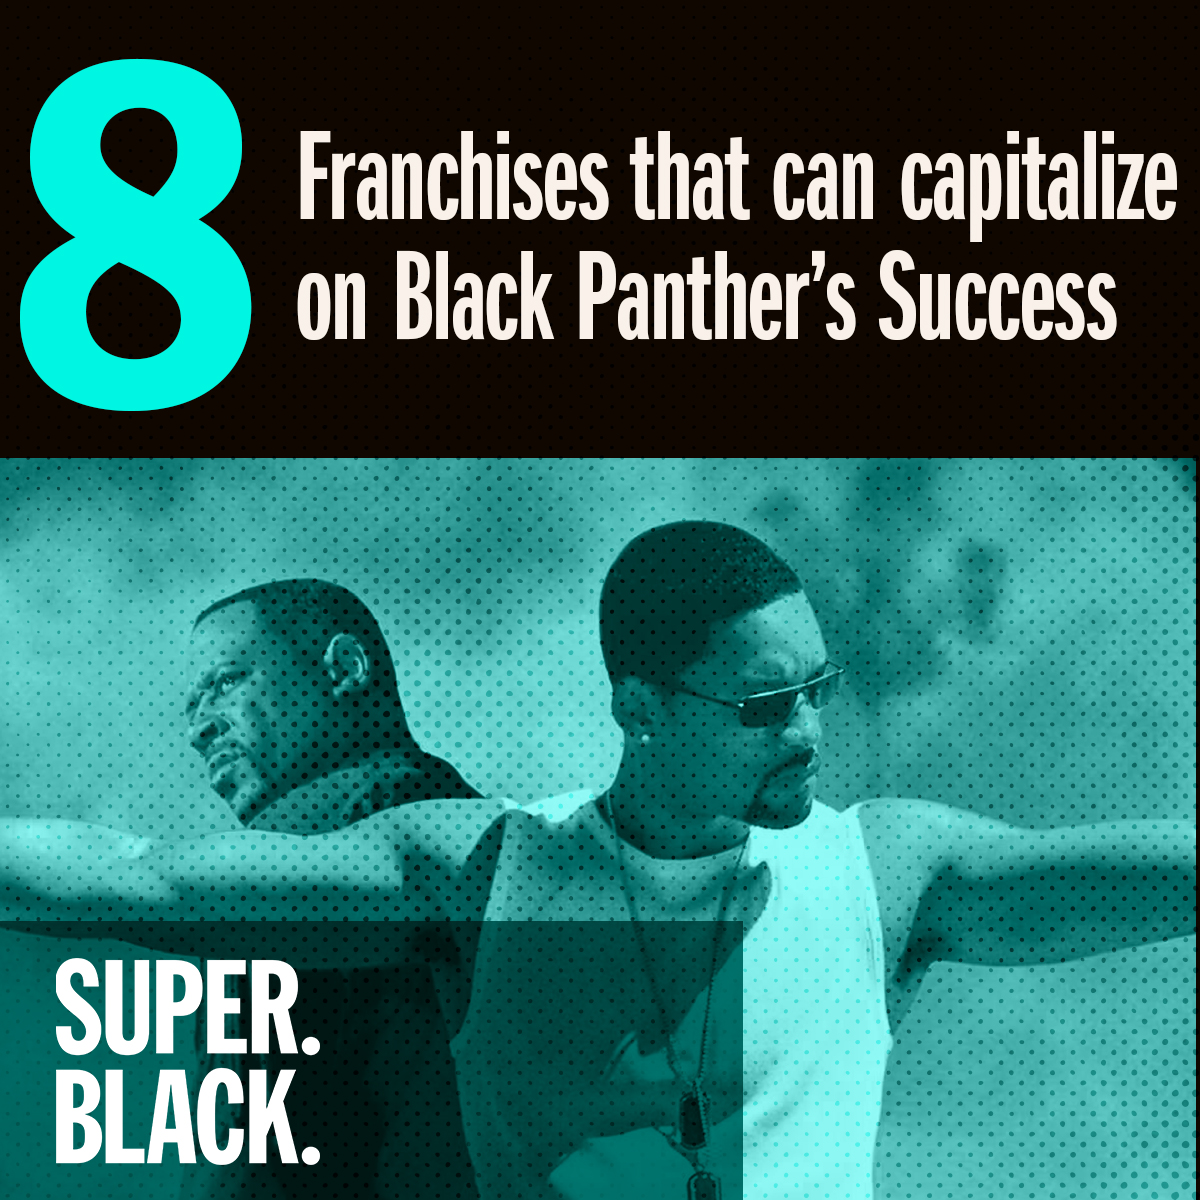 8 Franchises That Can Capitalize on Black Panther's Success - Super. Black.